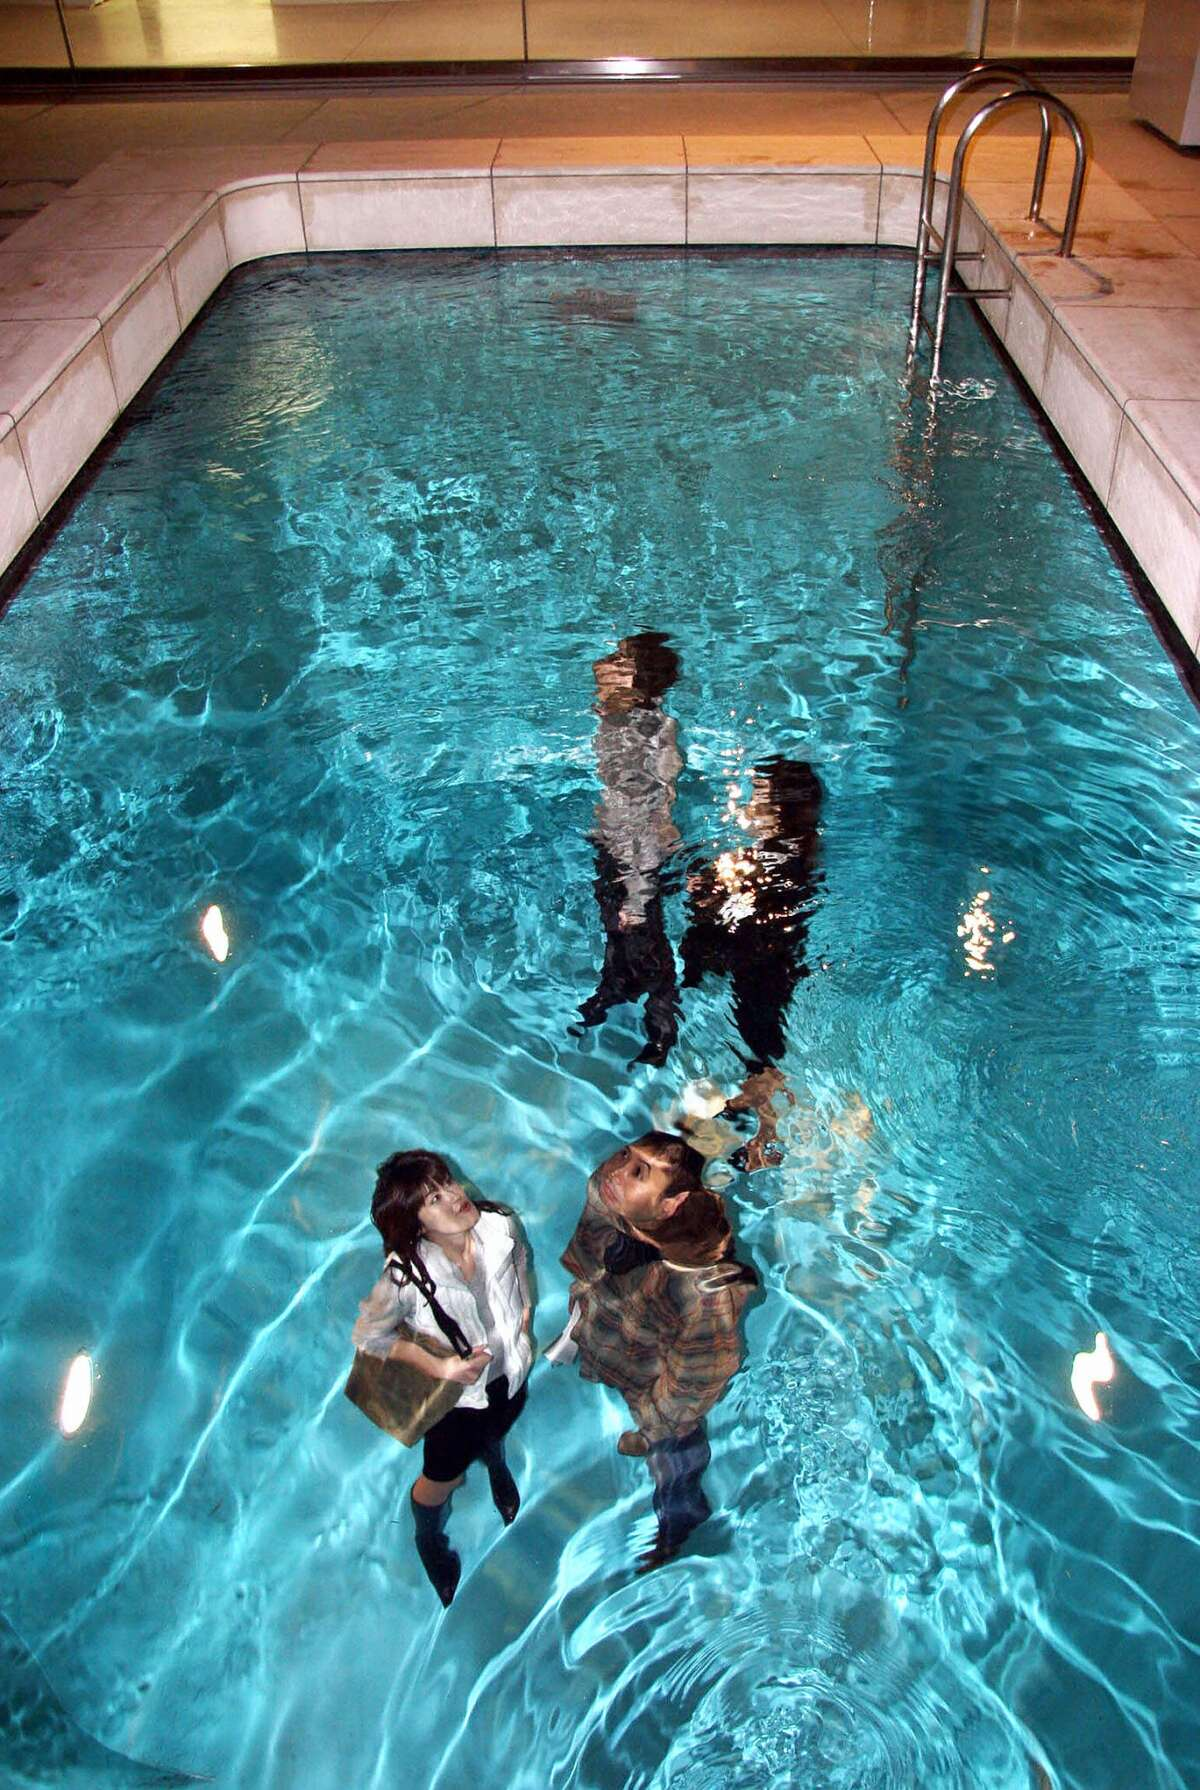 In an undated photo, Japanese couples look through a swimming pool at the 21st Century Museum of Contemporary Art in Kanazawa, in Ishikawa prefecture, northern Japan. The museum, which cost over 10 billion yen, is a UFO-shaped modern complex which opened Oct. 9, 2004, bringing a rare contemporary expression in the heart of traditional Japan.